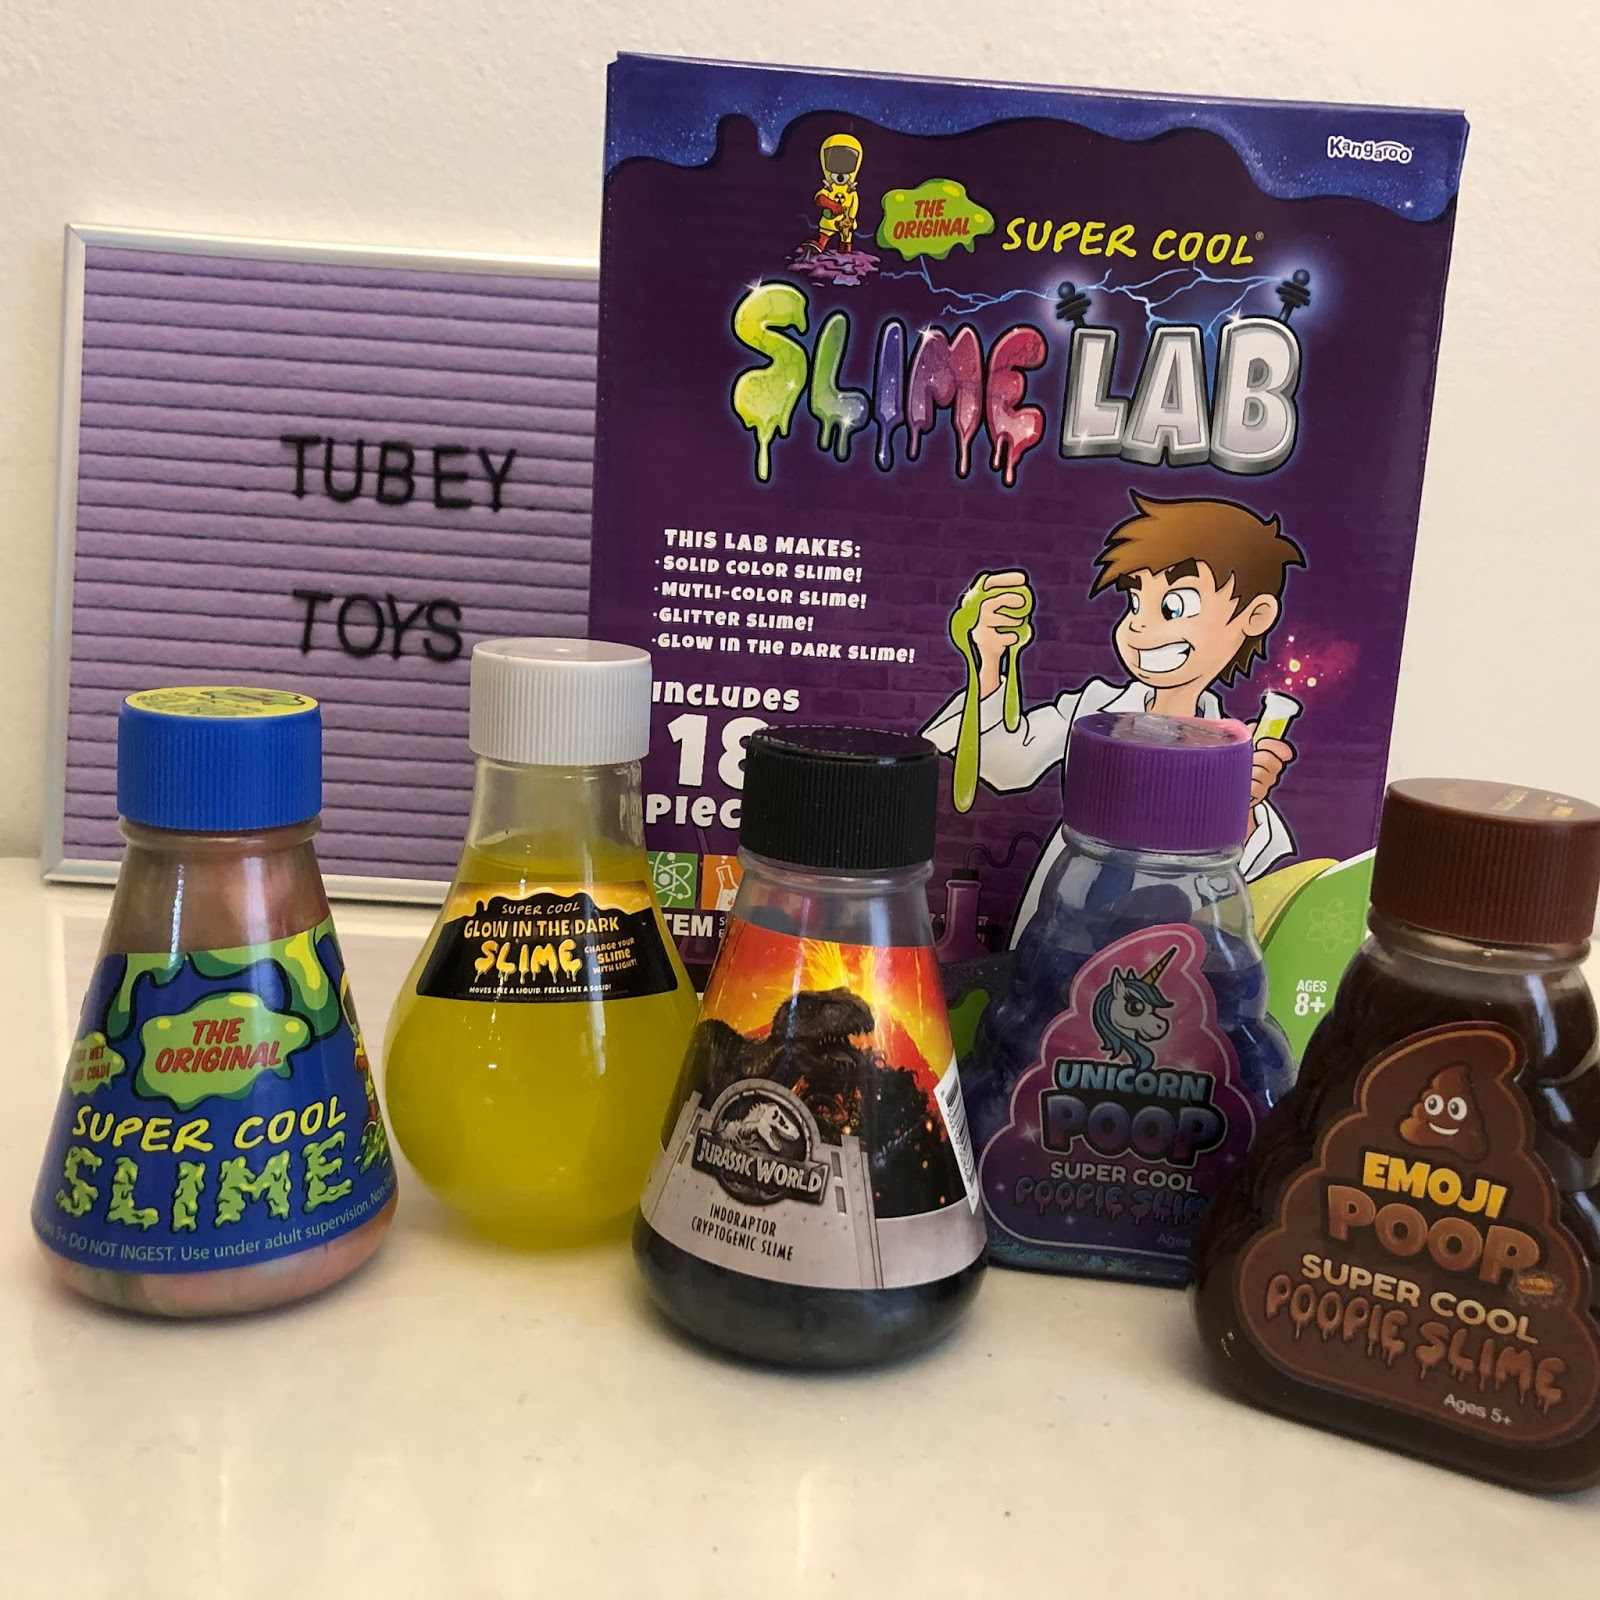 a2f3bab73 If making slime is not your thing, then definitely look into Kangaroo  Manufacturing's ready-made slimes - from Emoji Poop Slime in a fun, ...